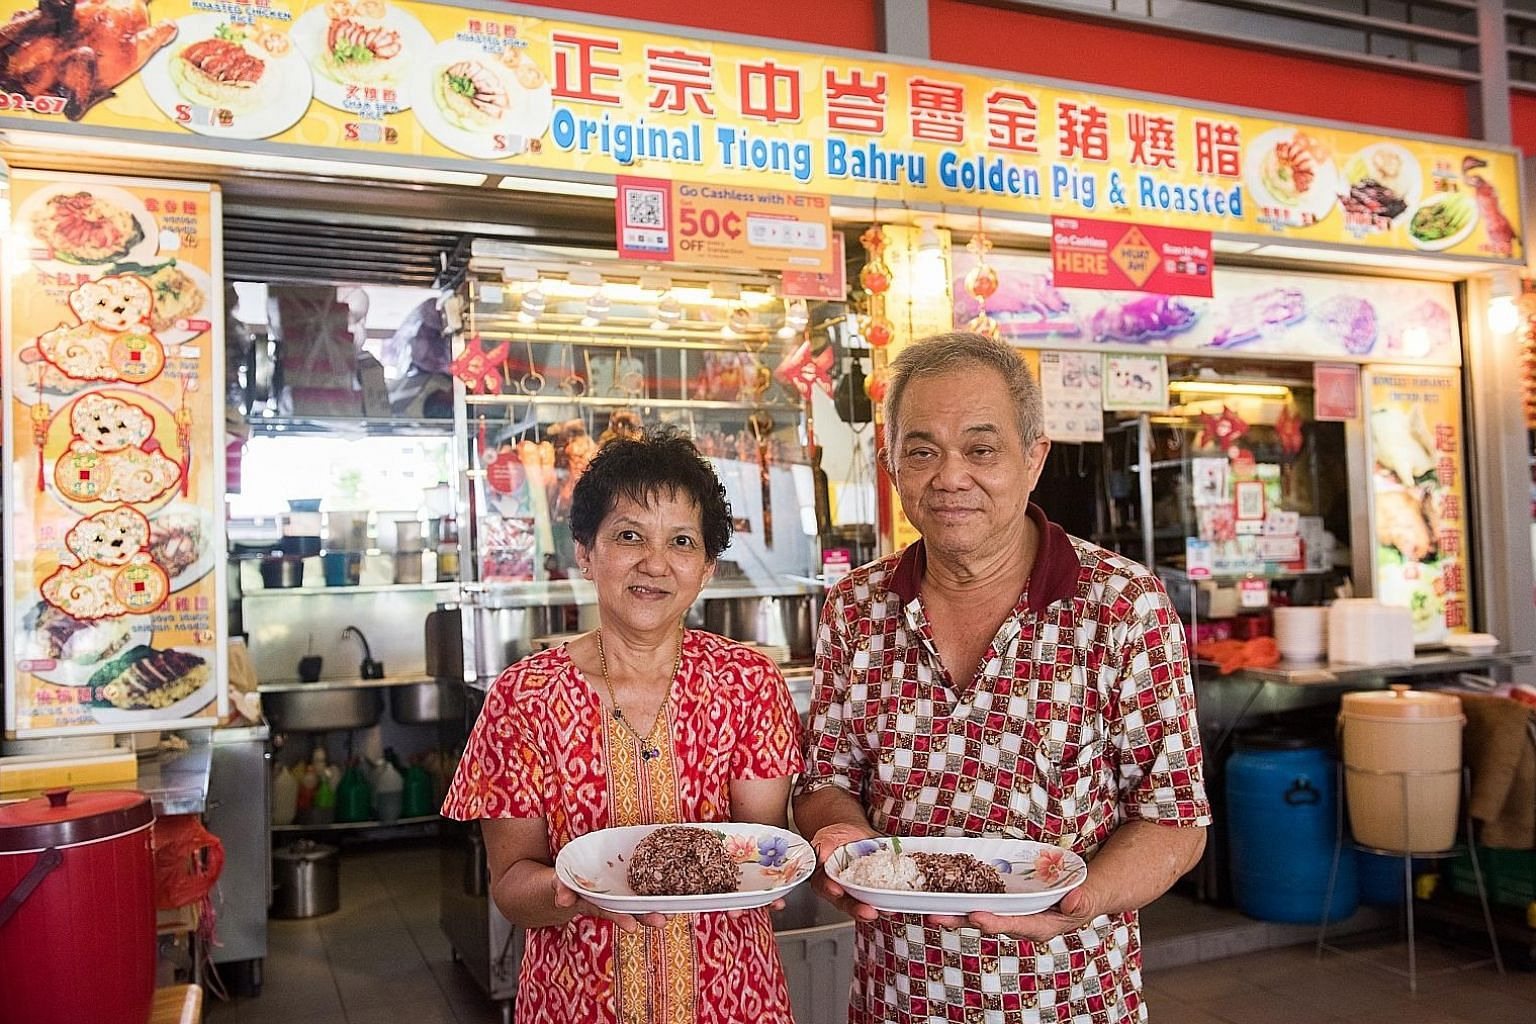 Madam Wee Ling Kue, 67 and Mr Chan Pak Seng, 68 - the owners of Original Tiong Bahru Golden Pig & Roasted - are among those at Tiong Bahru Market who are using wholegrains in their dishes.